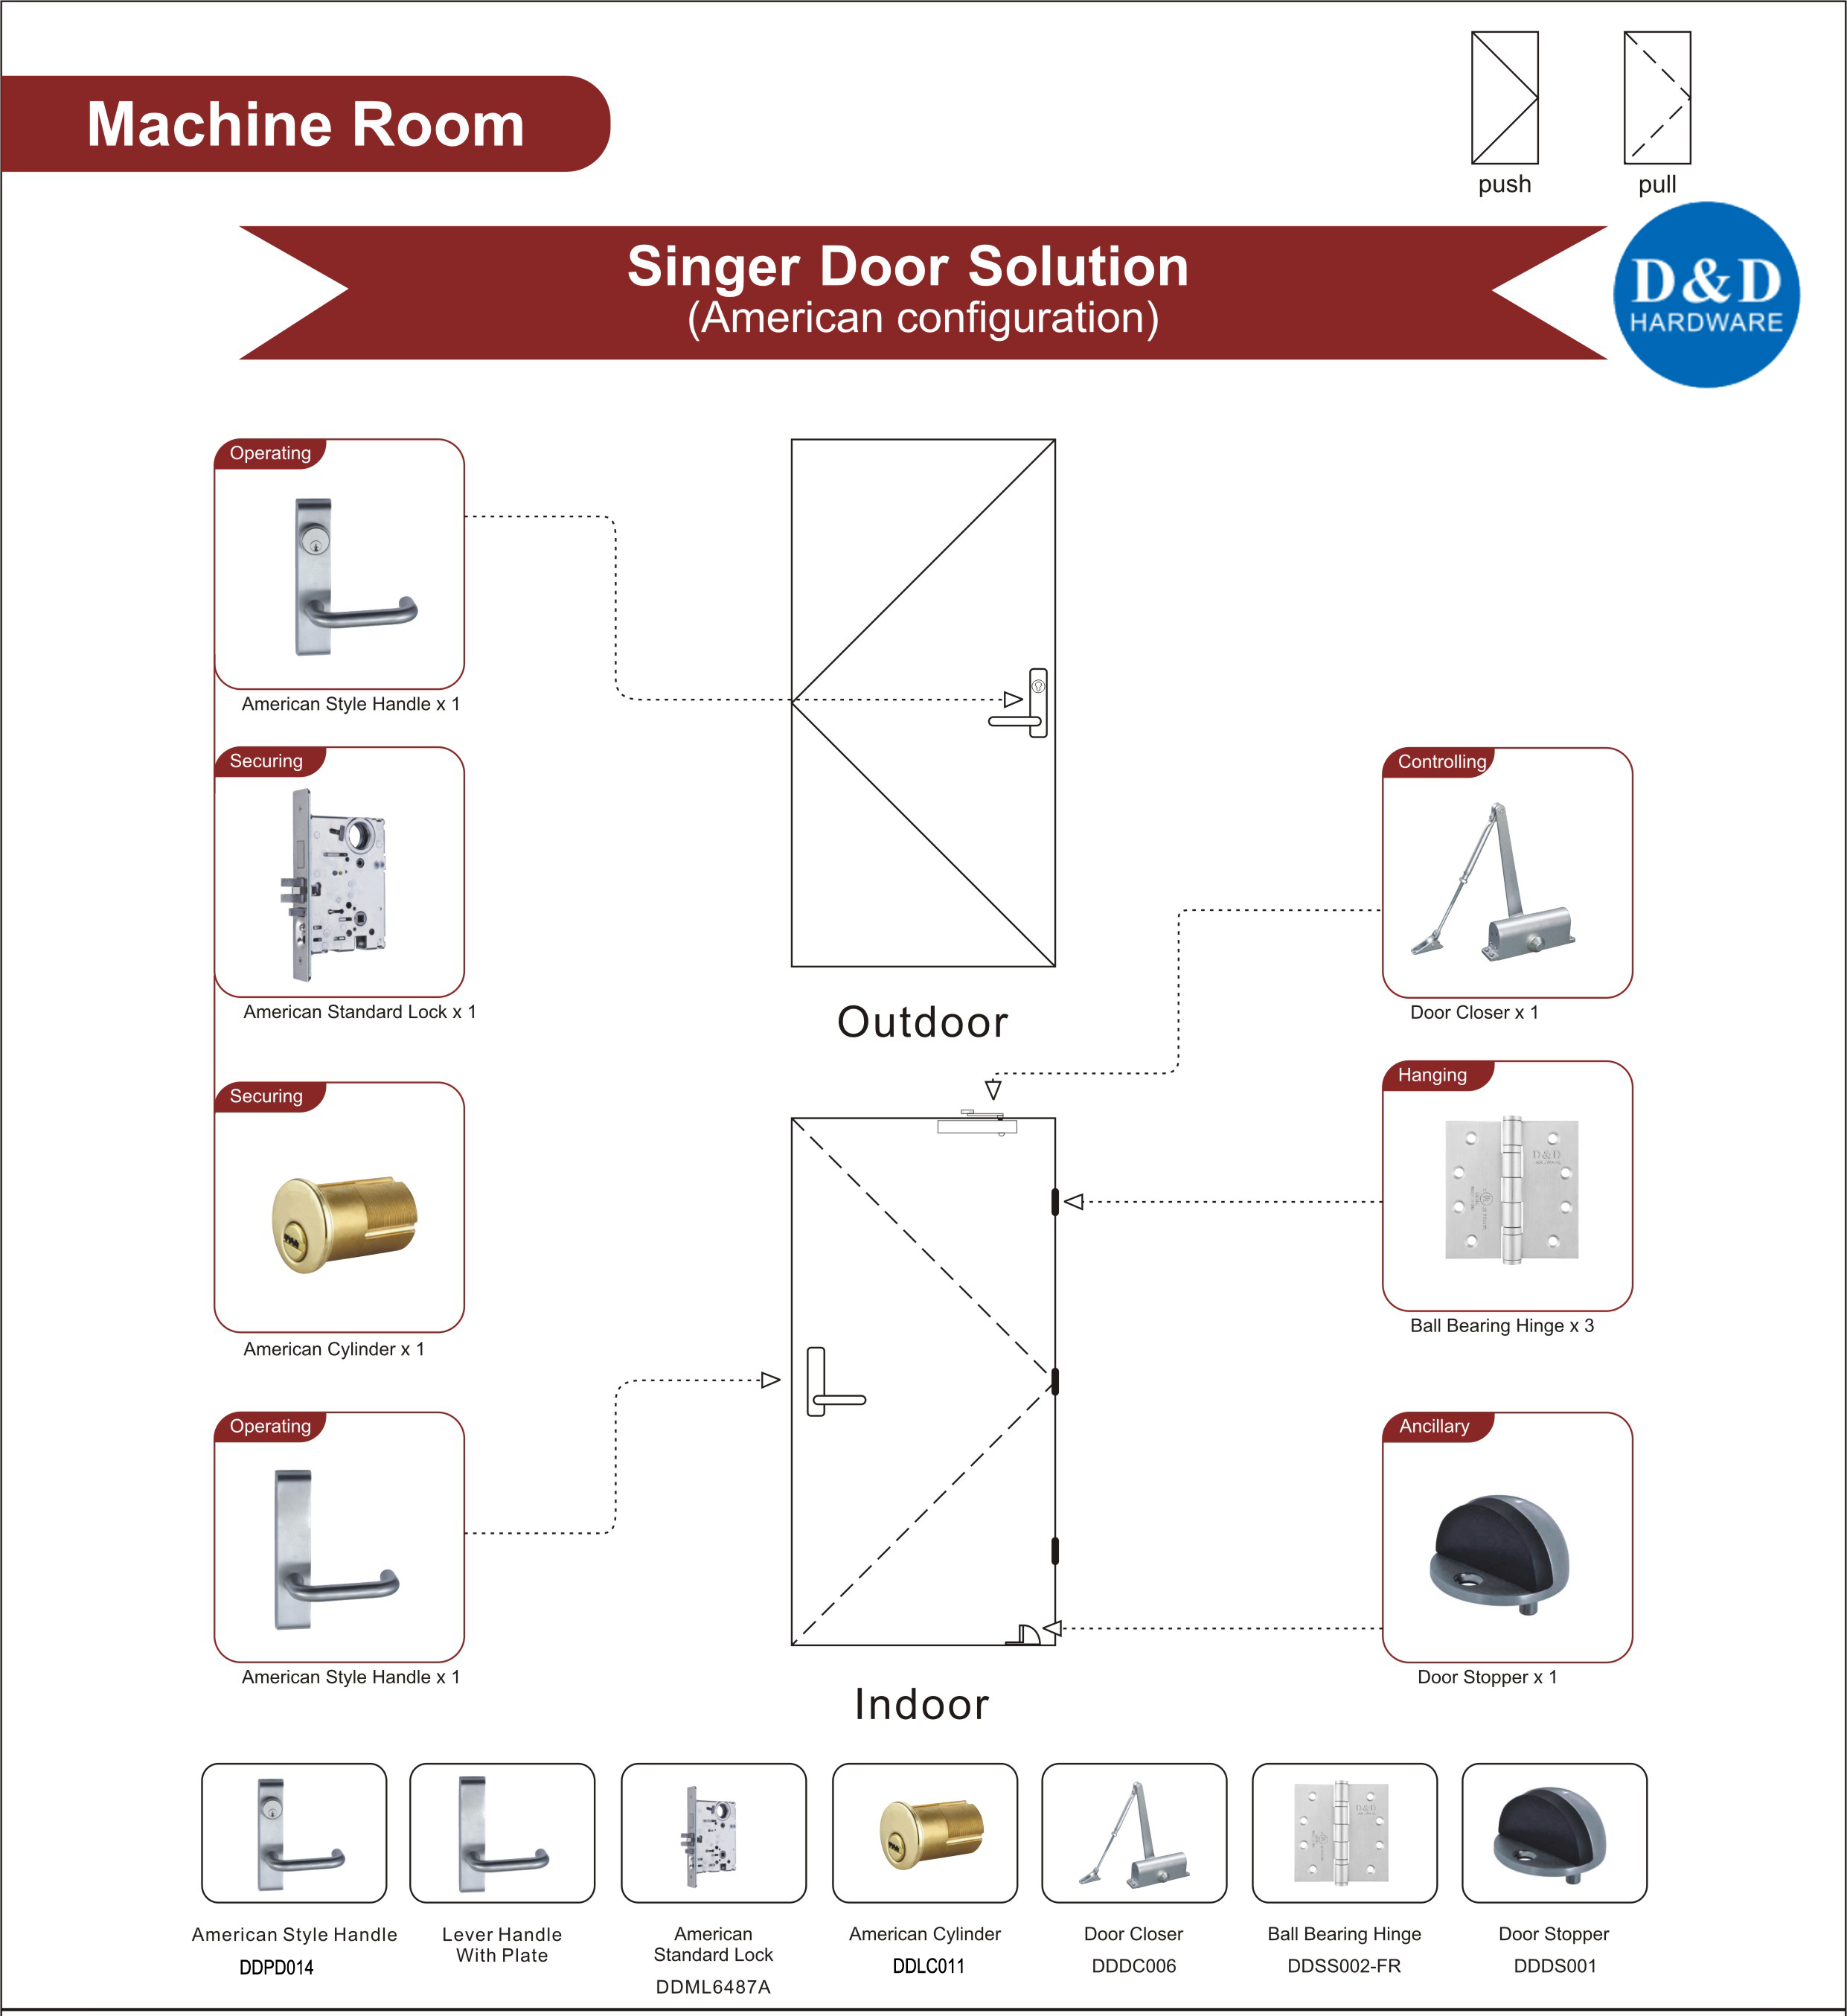 Fire Rated Steel Door Hardware For Machine Room Single Door